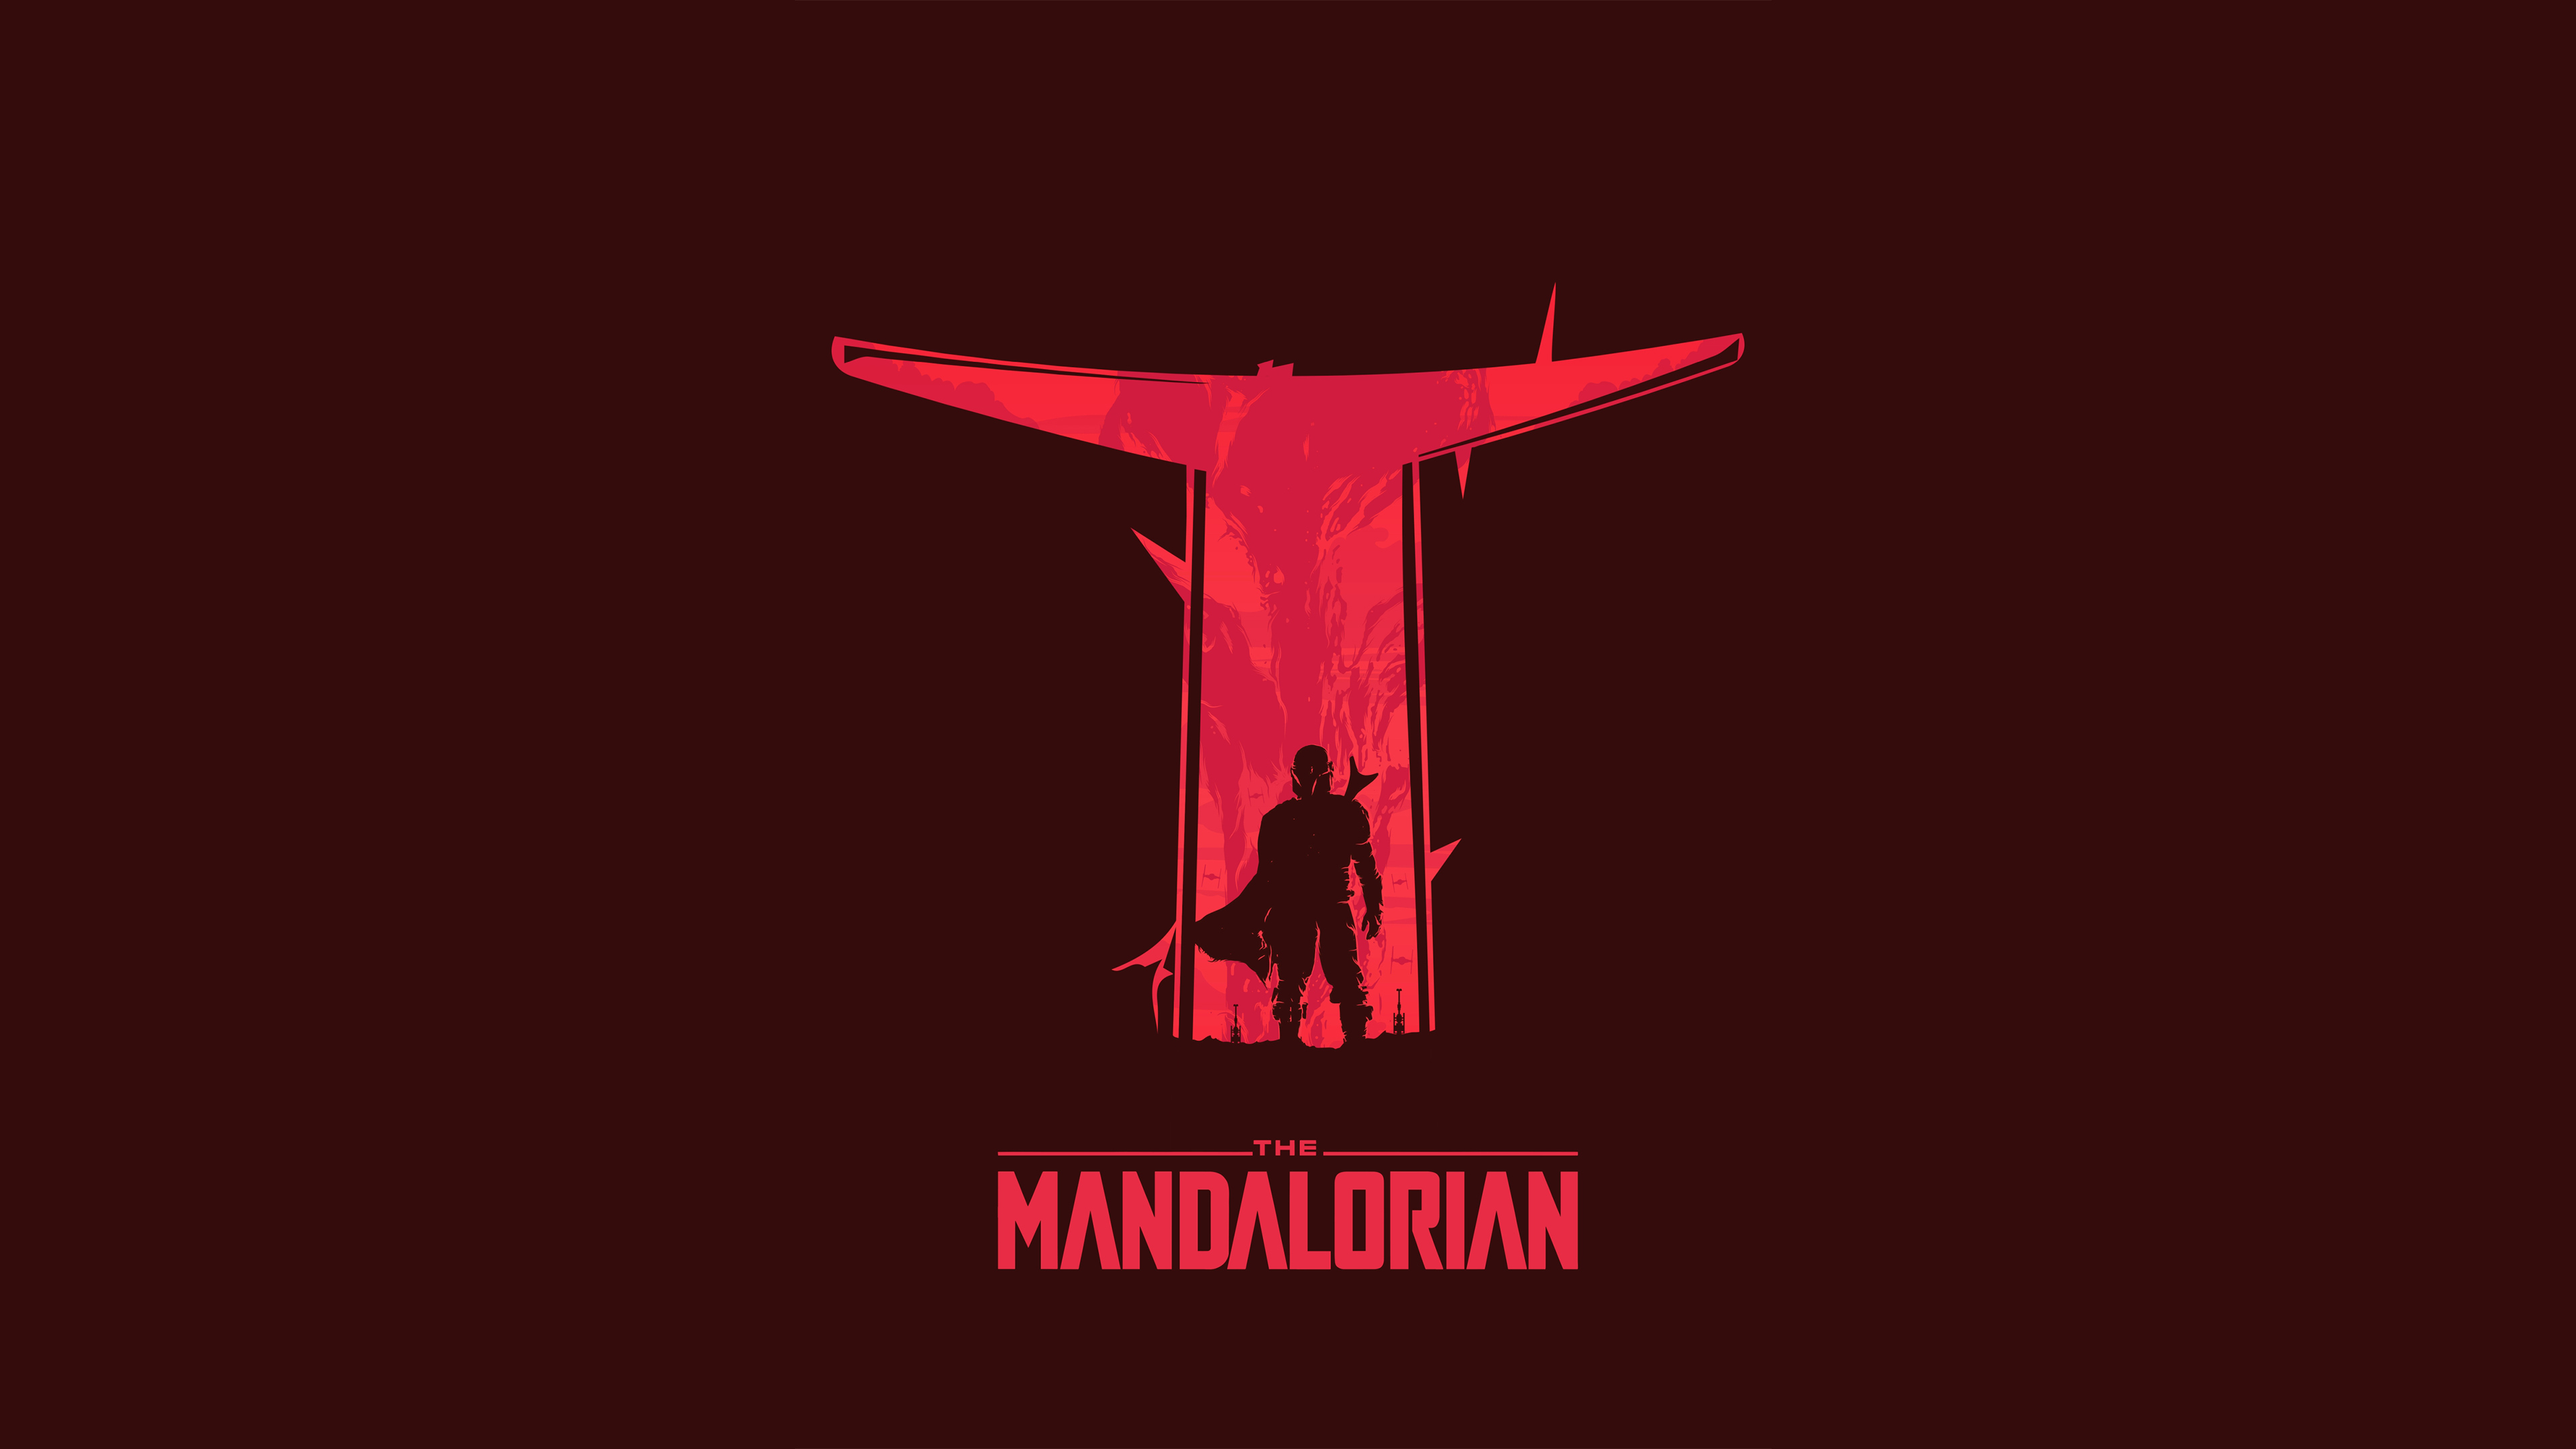 The Mandalorian Minimalist Wallpaper Hd Tv Series 4k Wallpapers Images Photos And Background